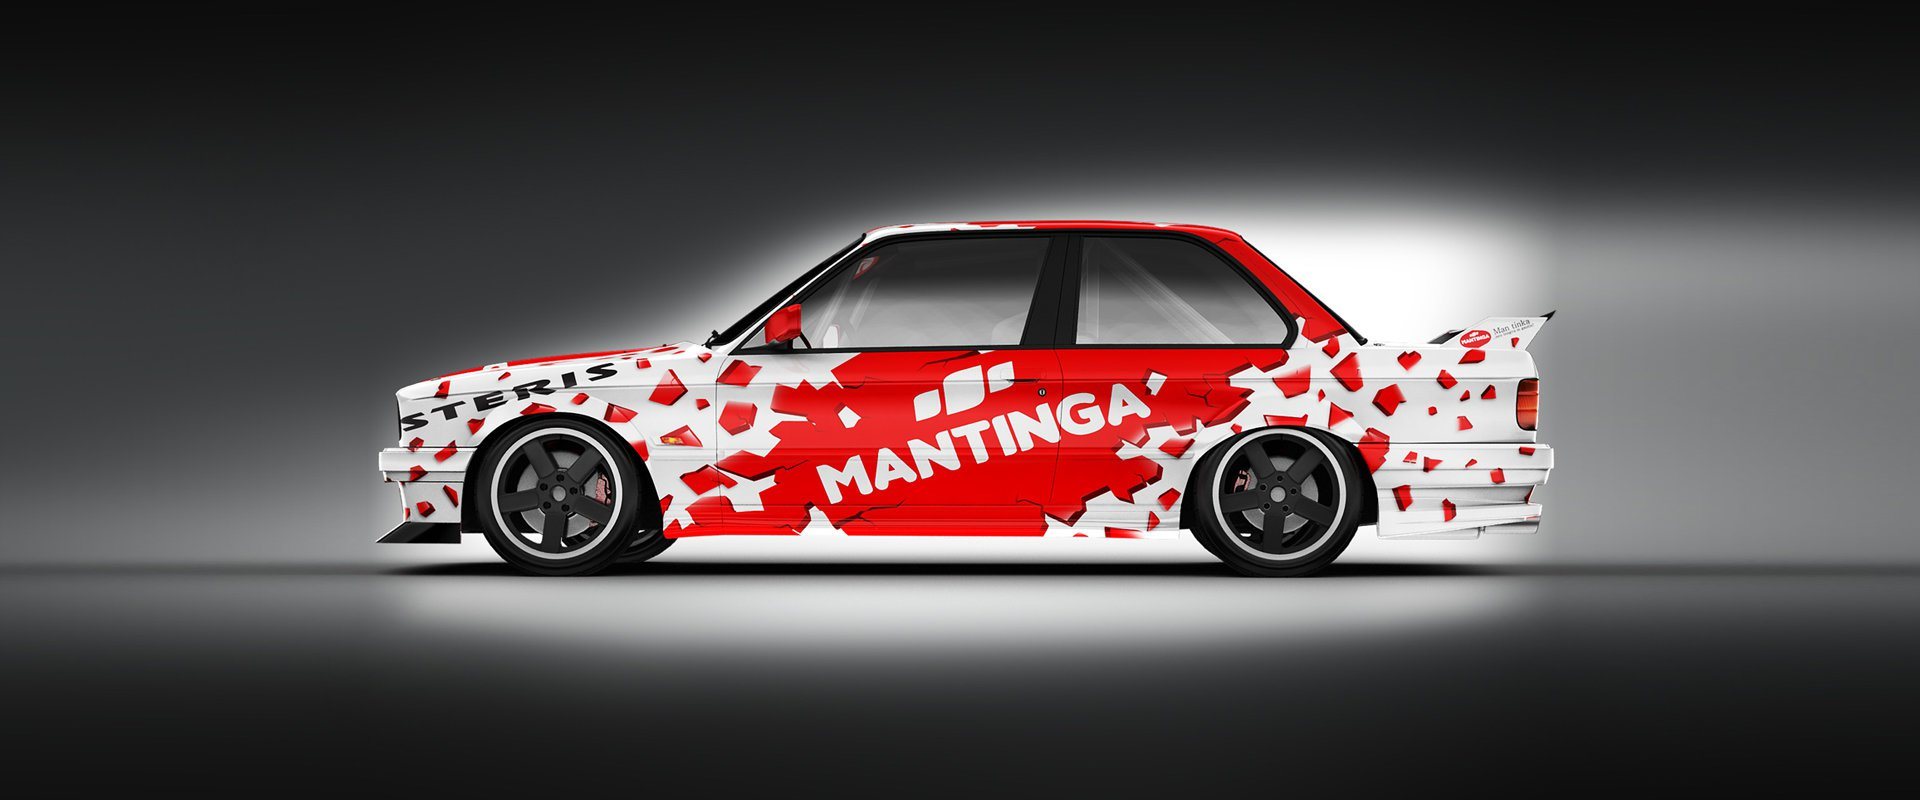 Mantas Drift #2